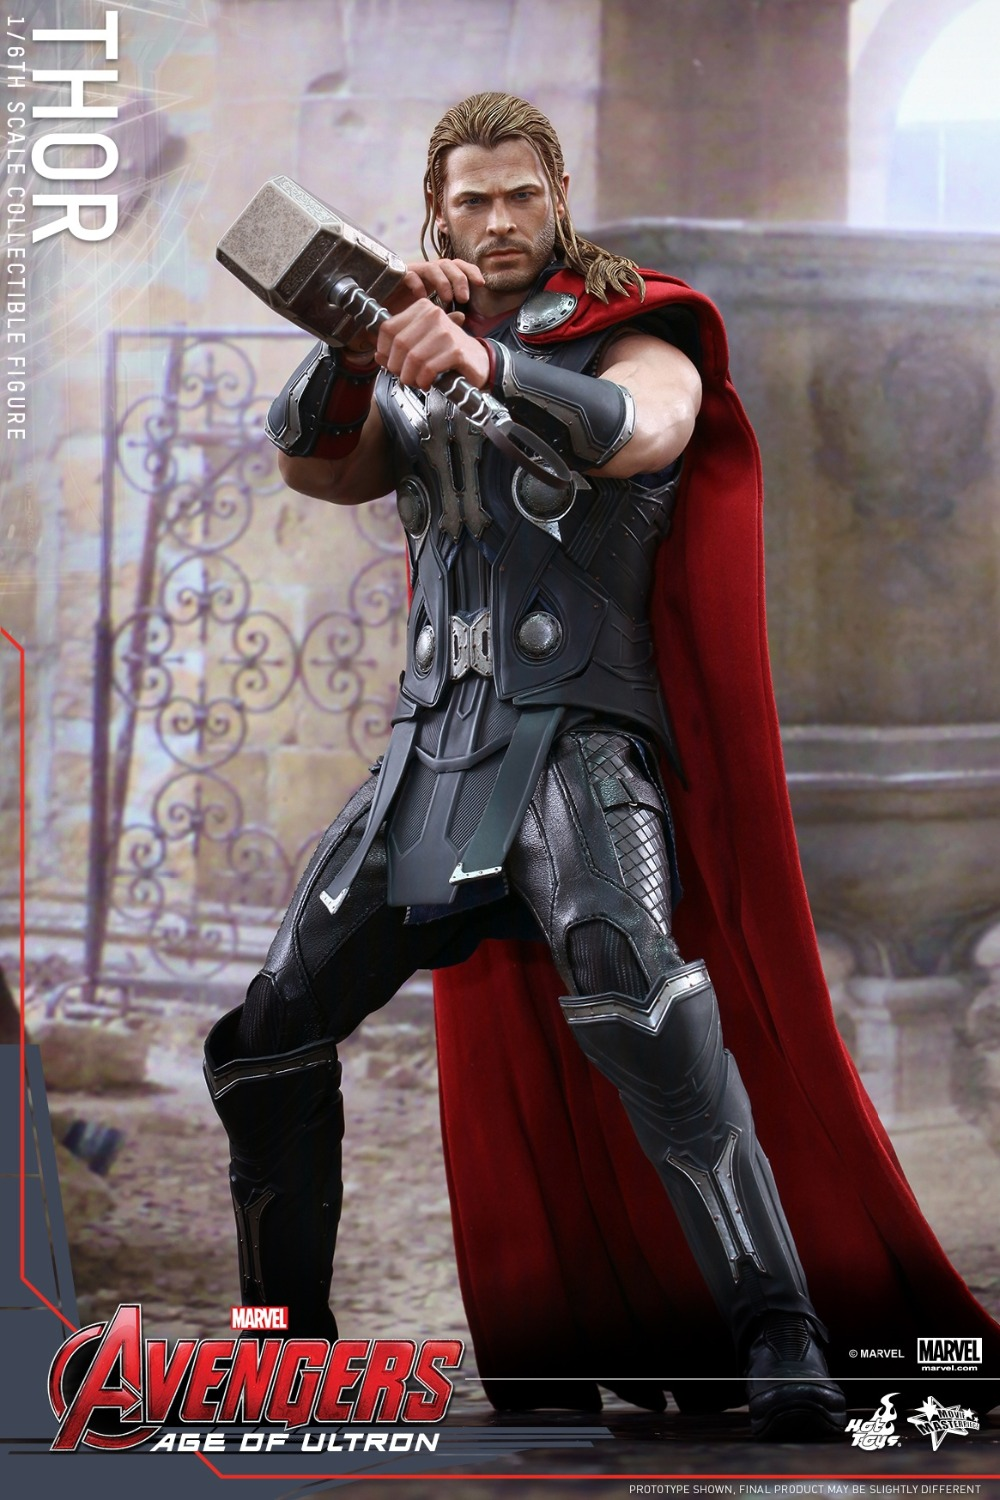 1/6 scale Figure doll Avengers Age of Ultron THOR 12 action figures doll Collectible figure Plastic Model Toys 4.0 new hot 17cm avengers thor action figure toys collection christmas gift doll with box j h a c g